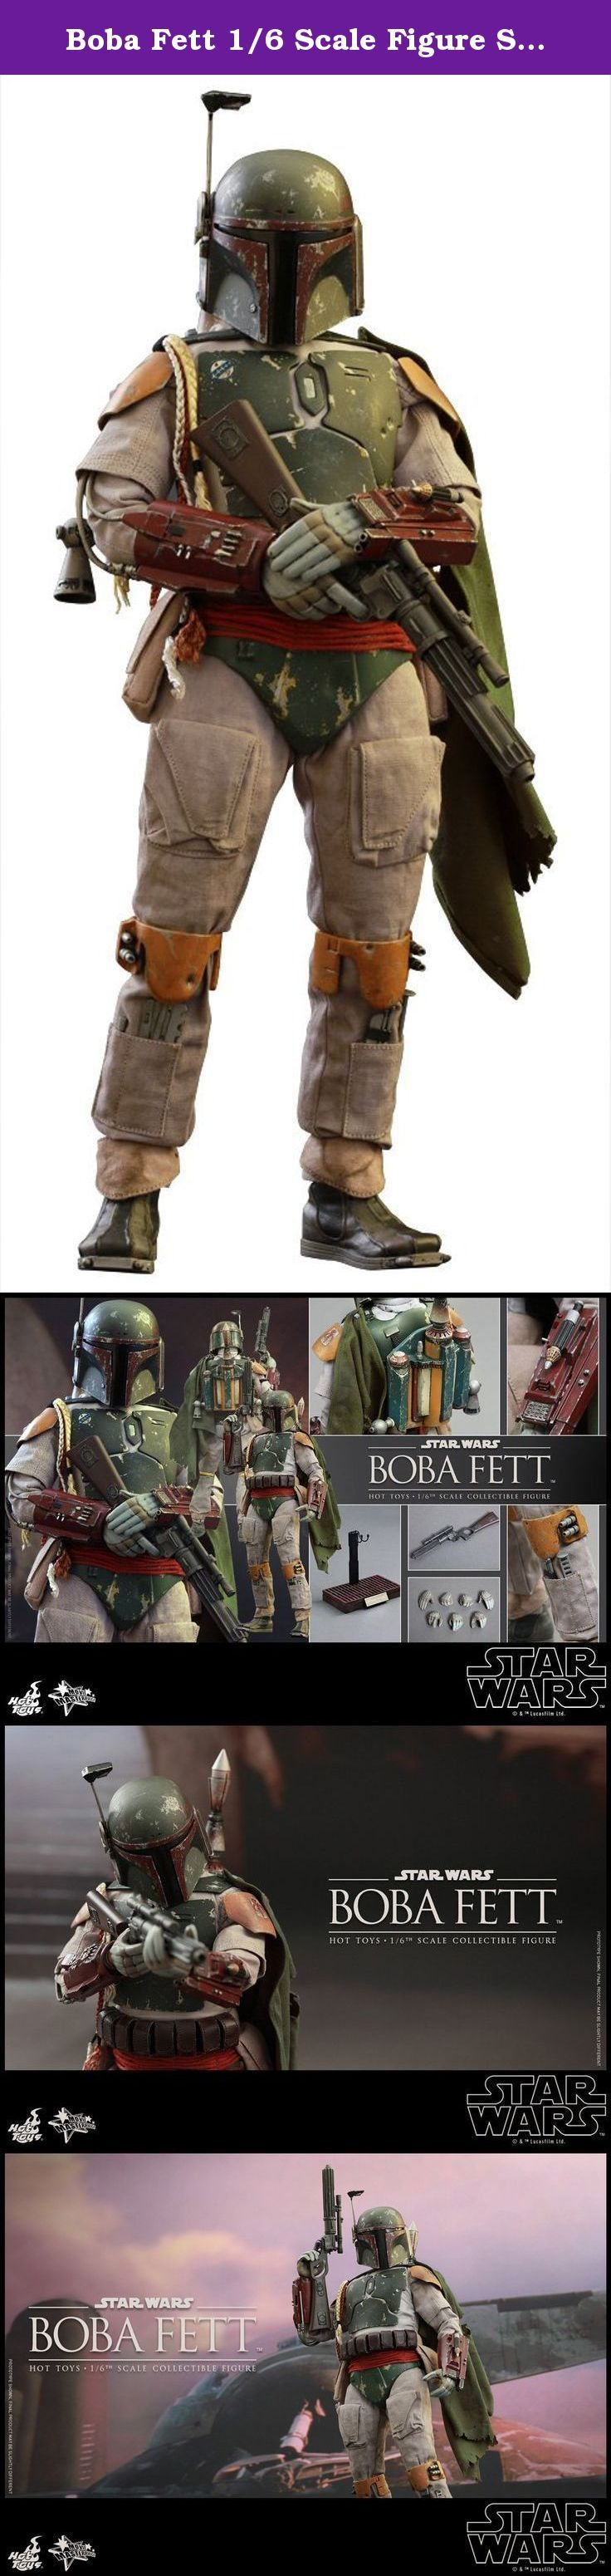 Boba Fett 1/6 Scale Figure Star Wars Episode VI Return of the Jedi Hot Toys. Equipped with customized Mandalorian armor and deadly skills, Boba Fett is a fearsome bounty hunter in the Star Wars galaxy, but also one of the most popular characters among fans!Sideshow Collectibles and Hot Toys are excited to officially present the new Boba Fett Sixth Scale Collectible Figure based on Star Wars: Episode VI Return of the Jedi!The highly-accurate collectible figure is specially crafted based on...